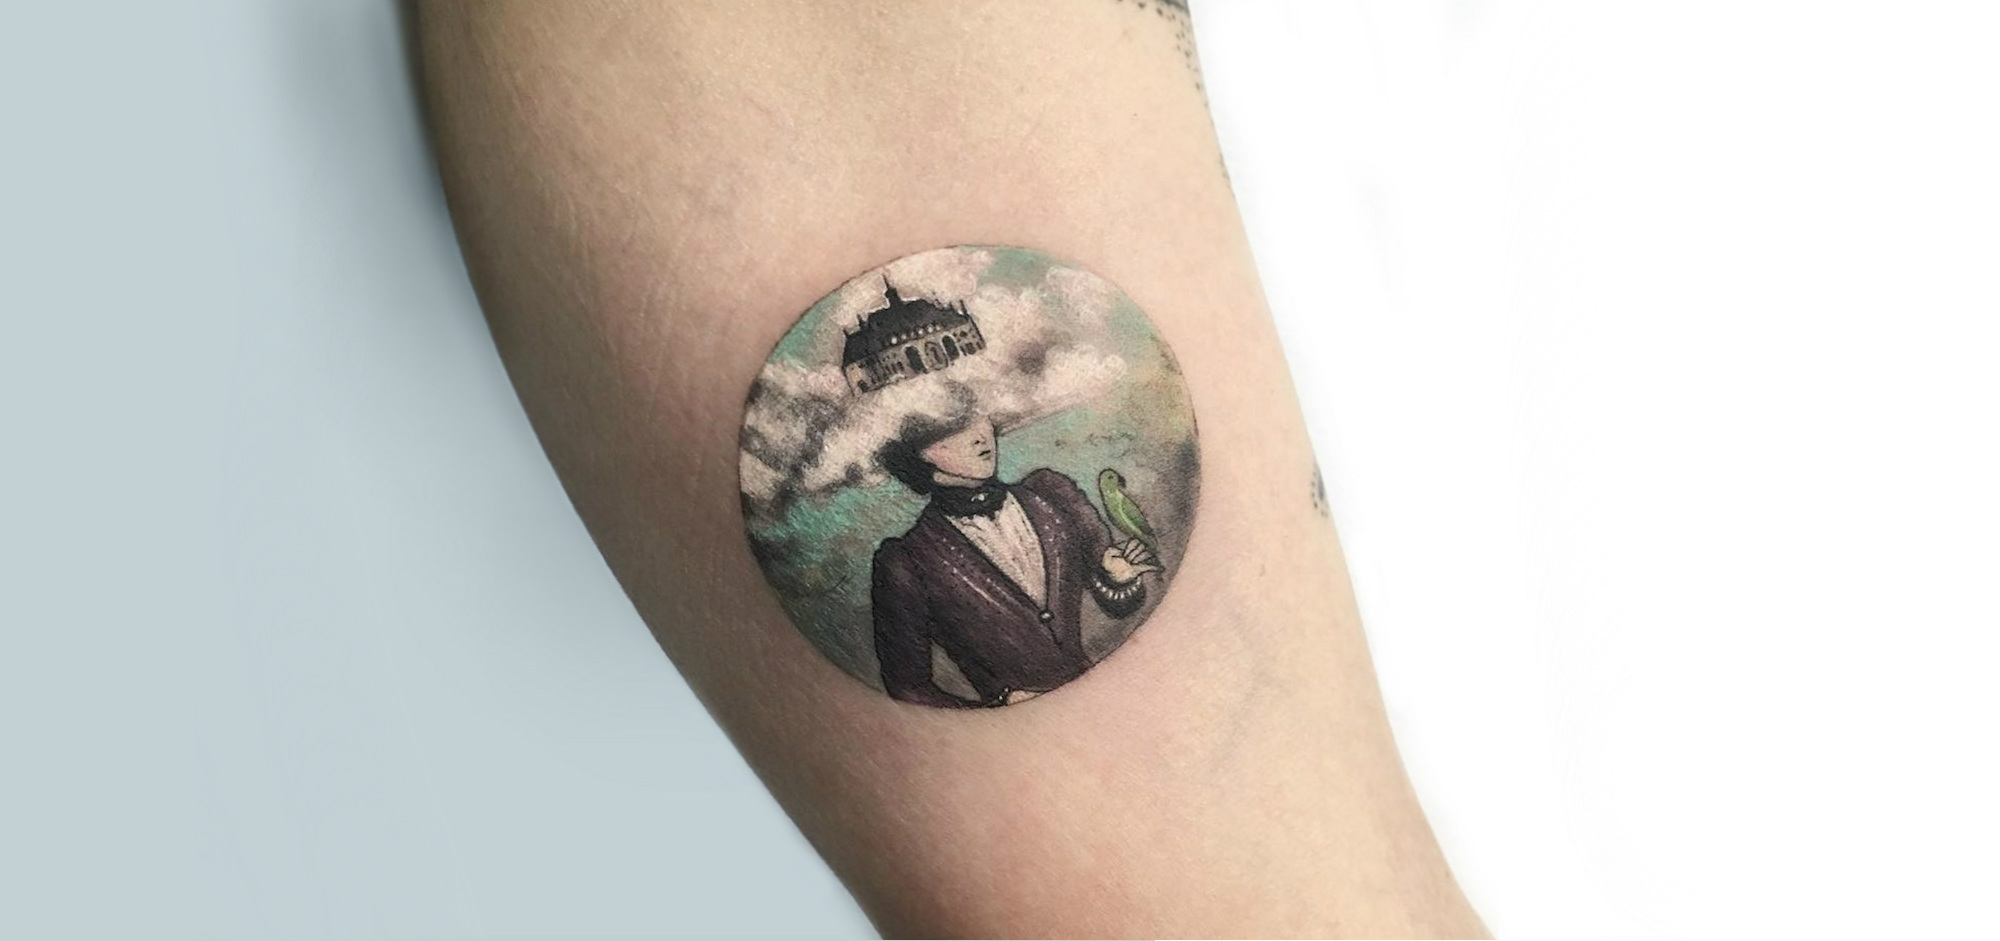 Miniature Tattoo Scenes by Eva Krbdk